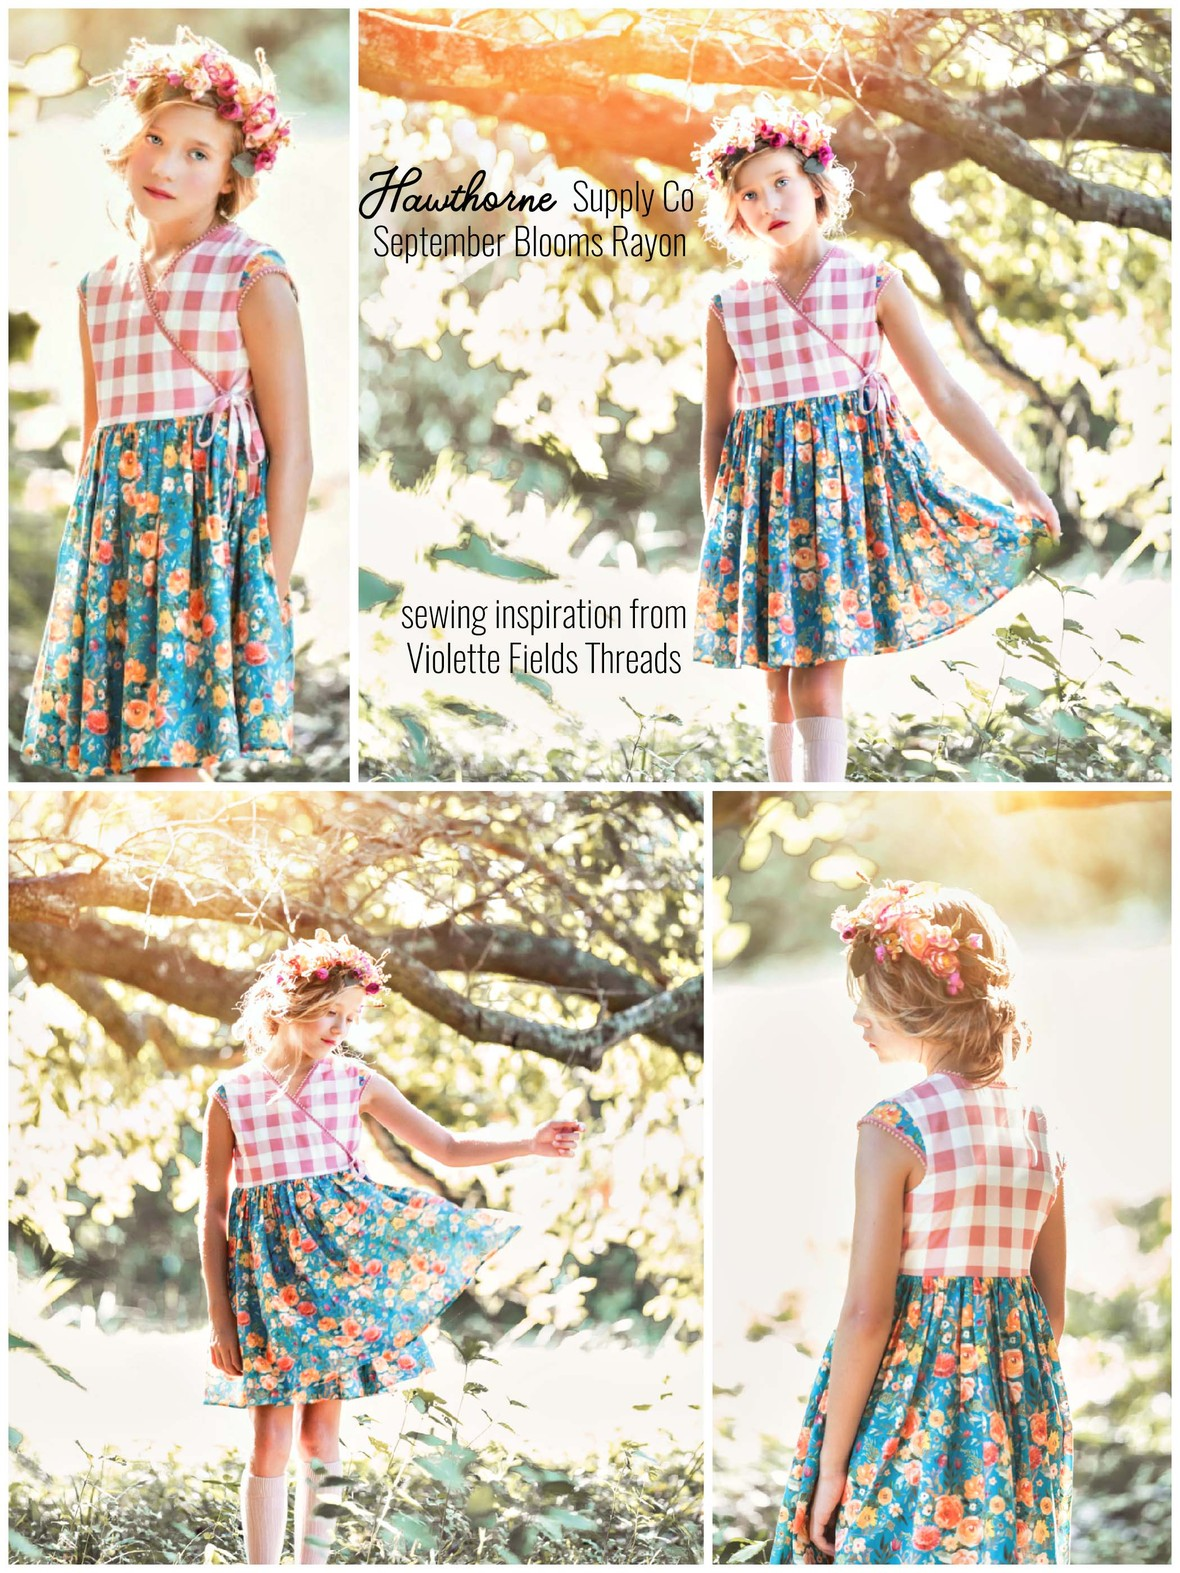 Shopcabin for Hawthorne Supply Co Fabric September Blooms Rayon VFT Olive Dress by Leah Pitkin